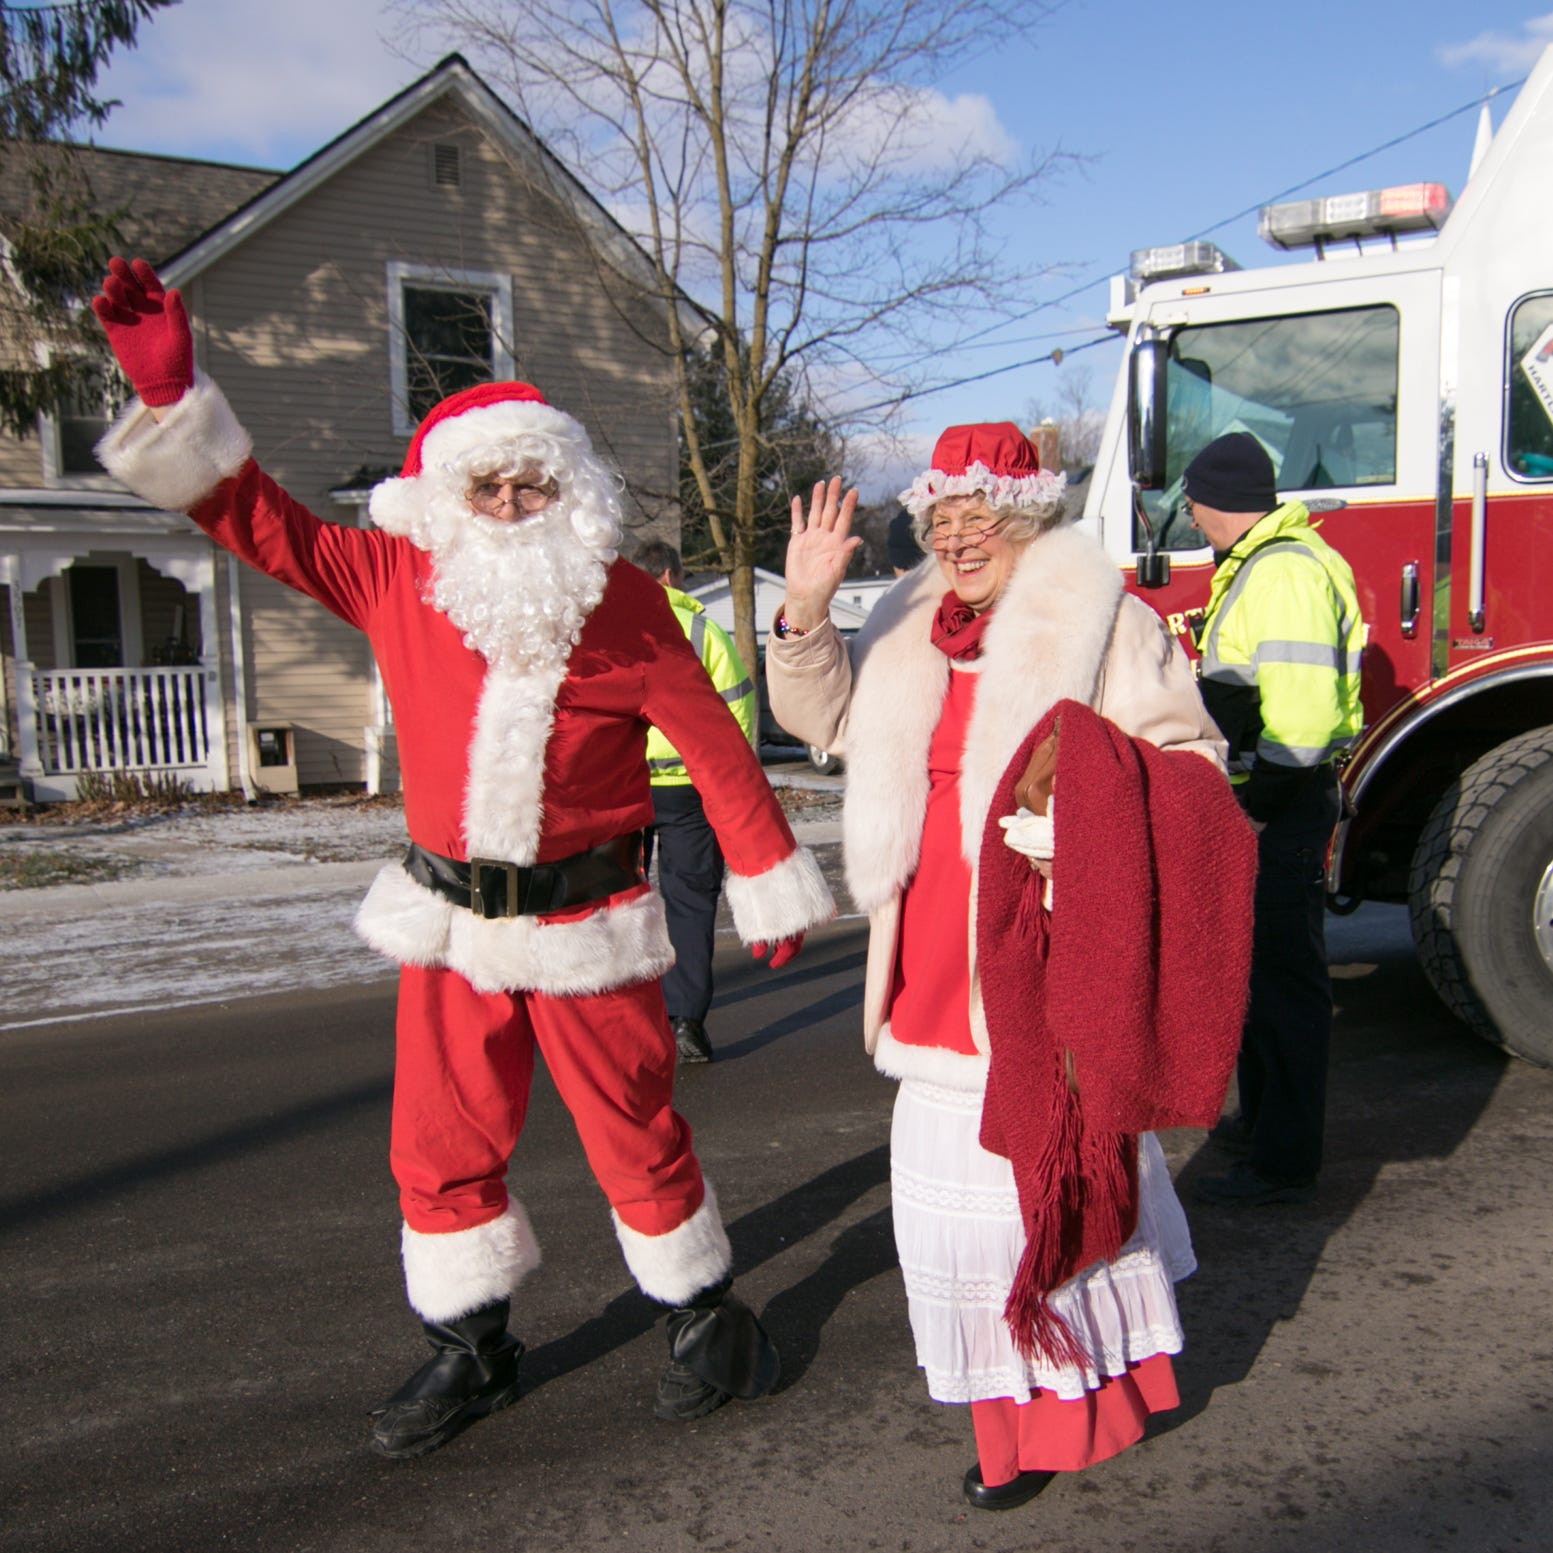 Trains, firetrucks and Santa are the stars of Polar Express Day